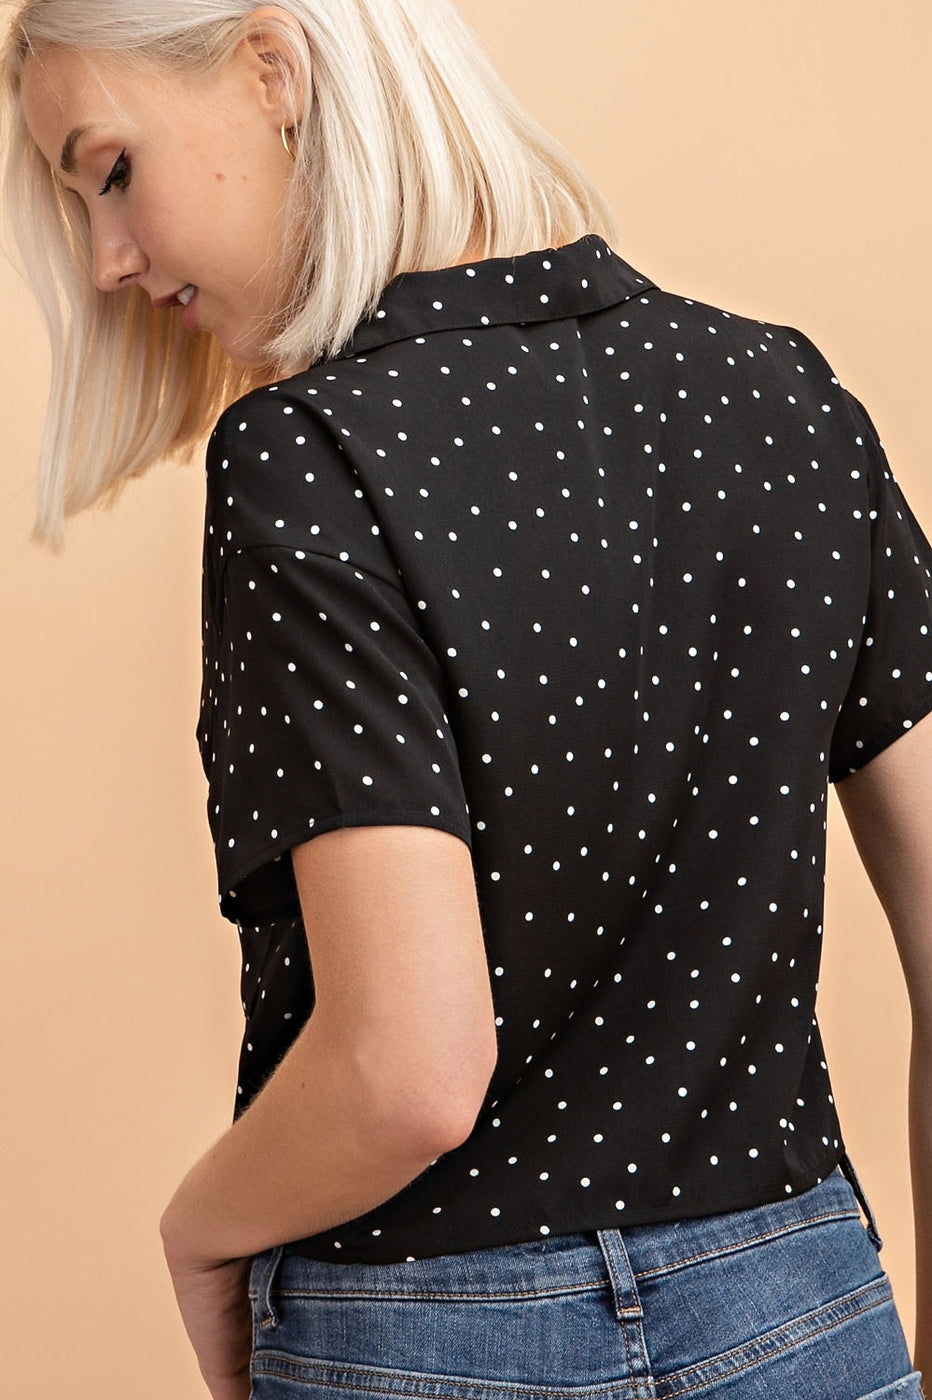 Polka Dot Short Sleeve Button Down Collared Top Siin Bees